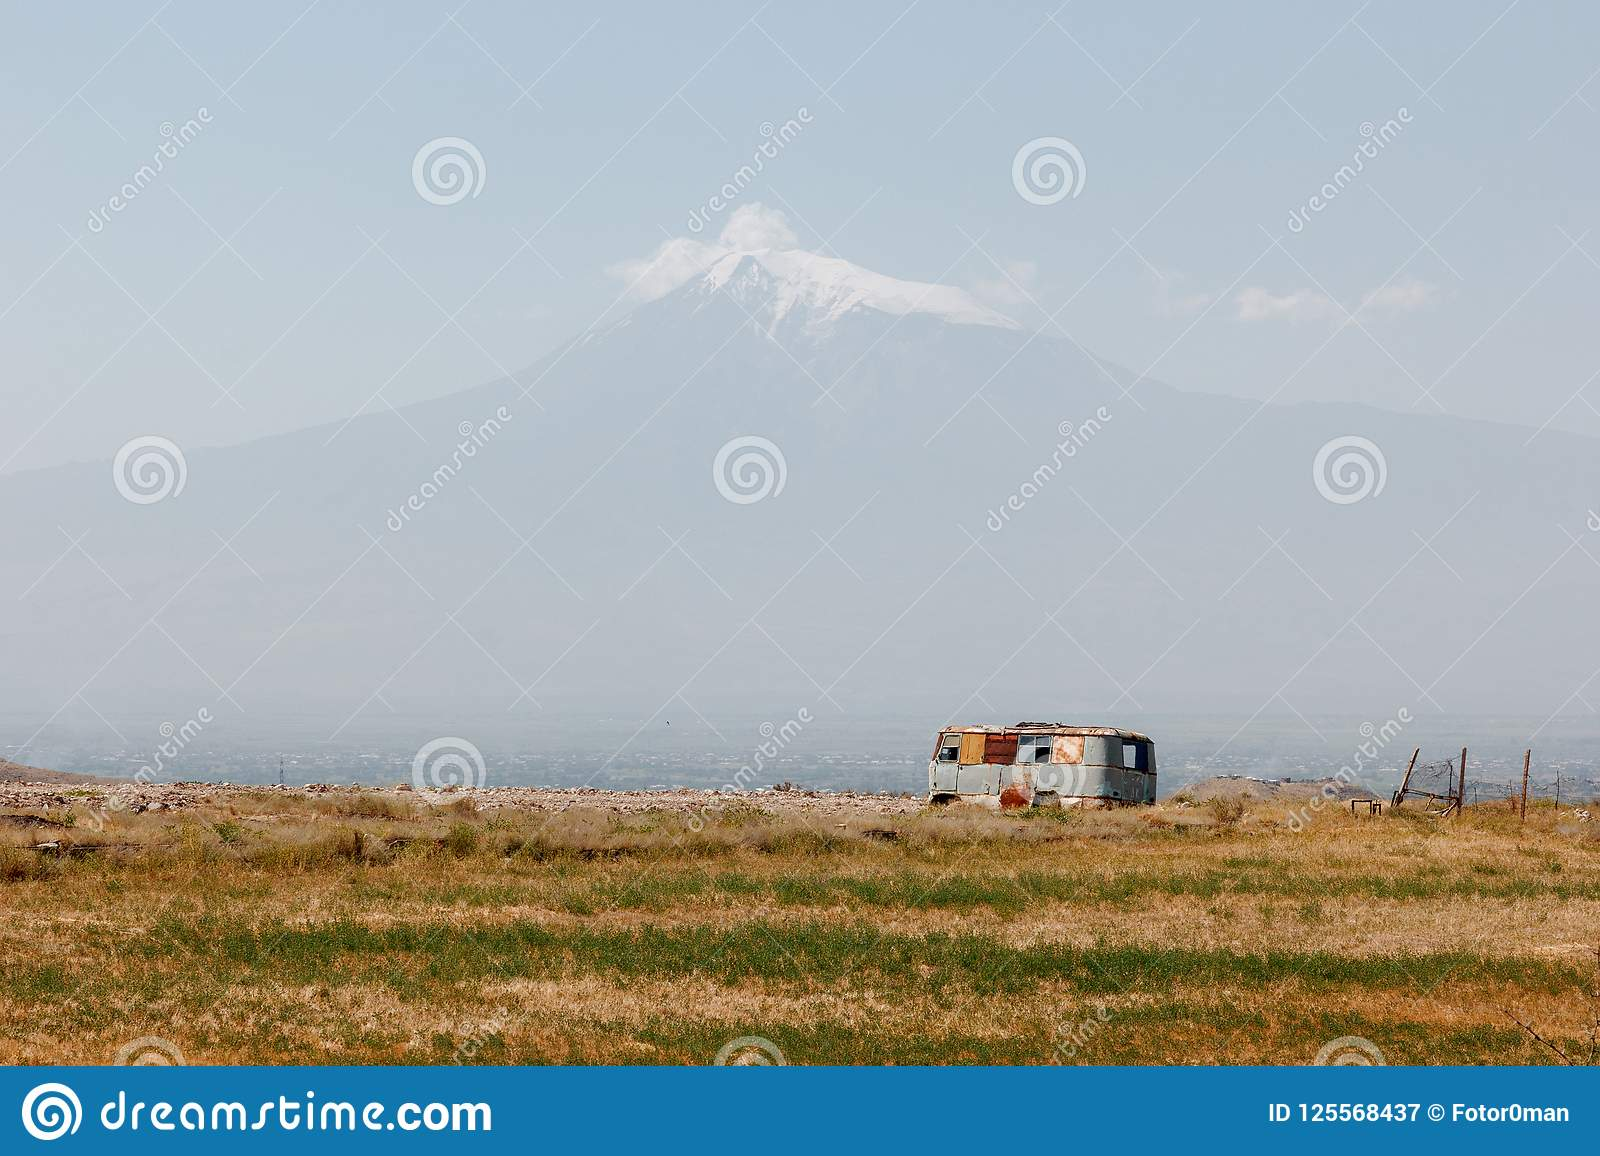 landscape with Mount Ararat and an old rusty abandoned bus